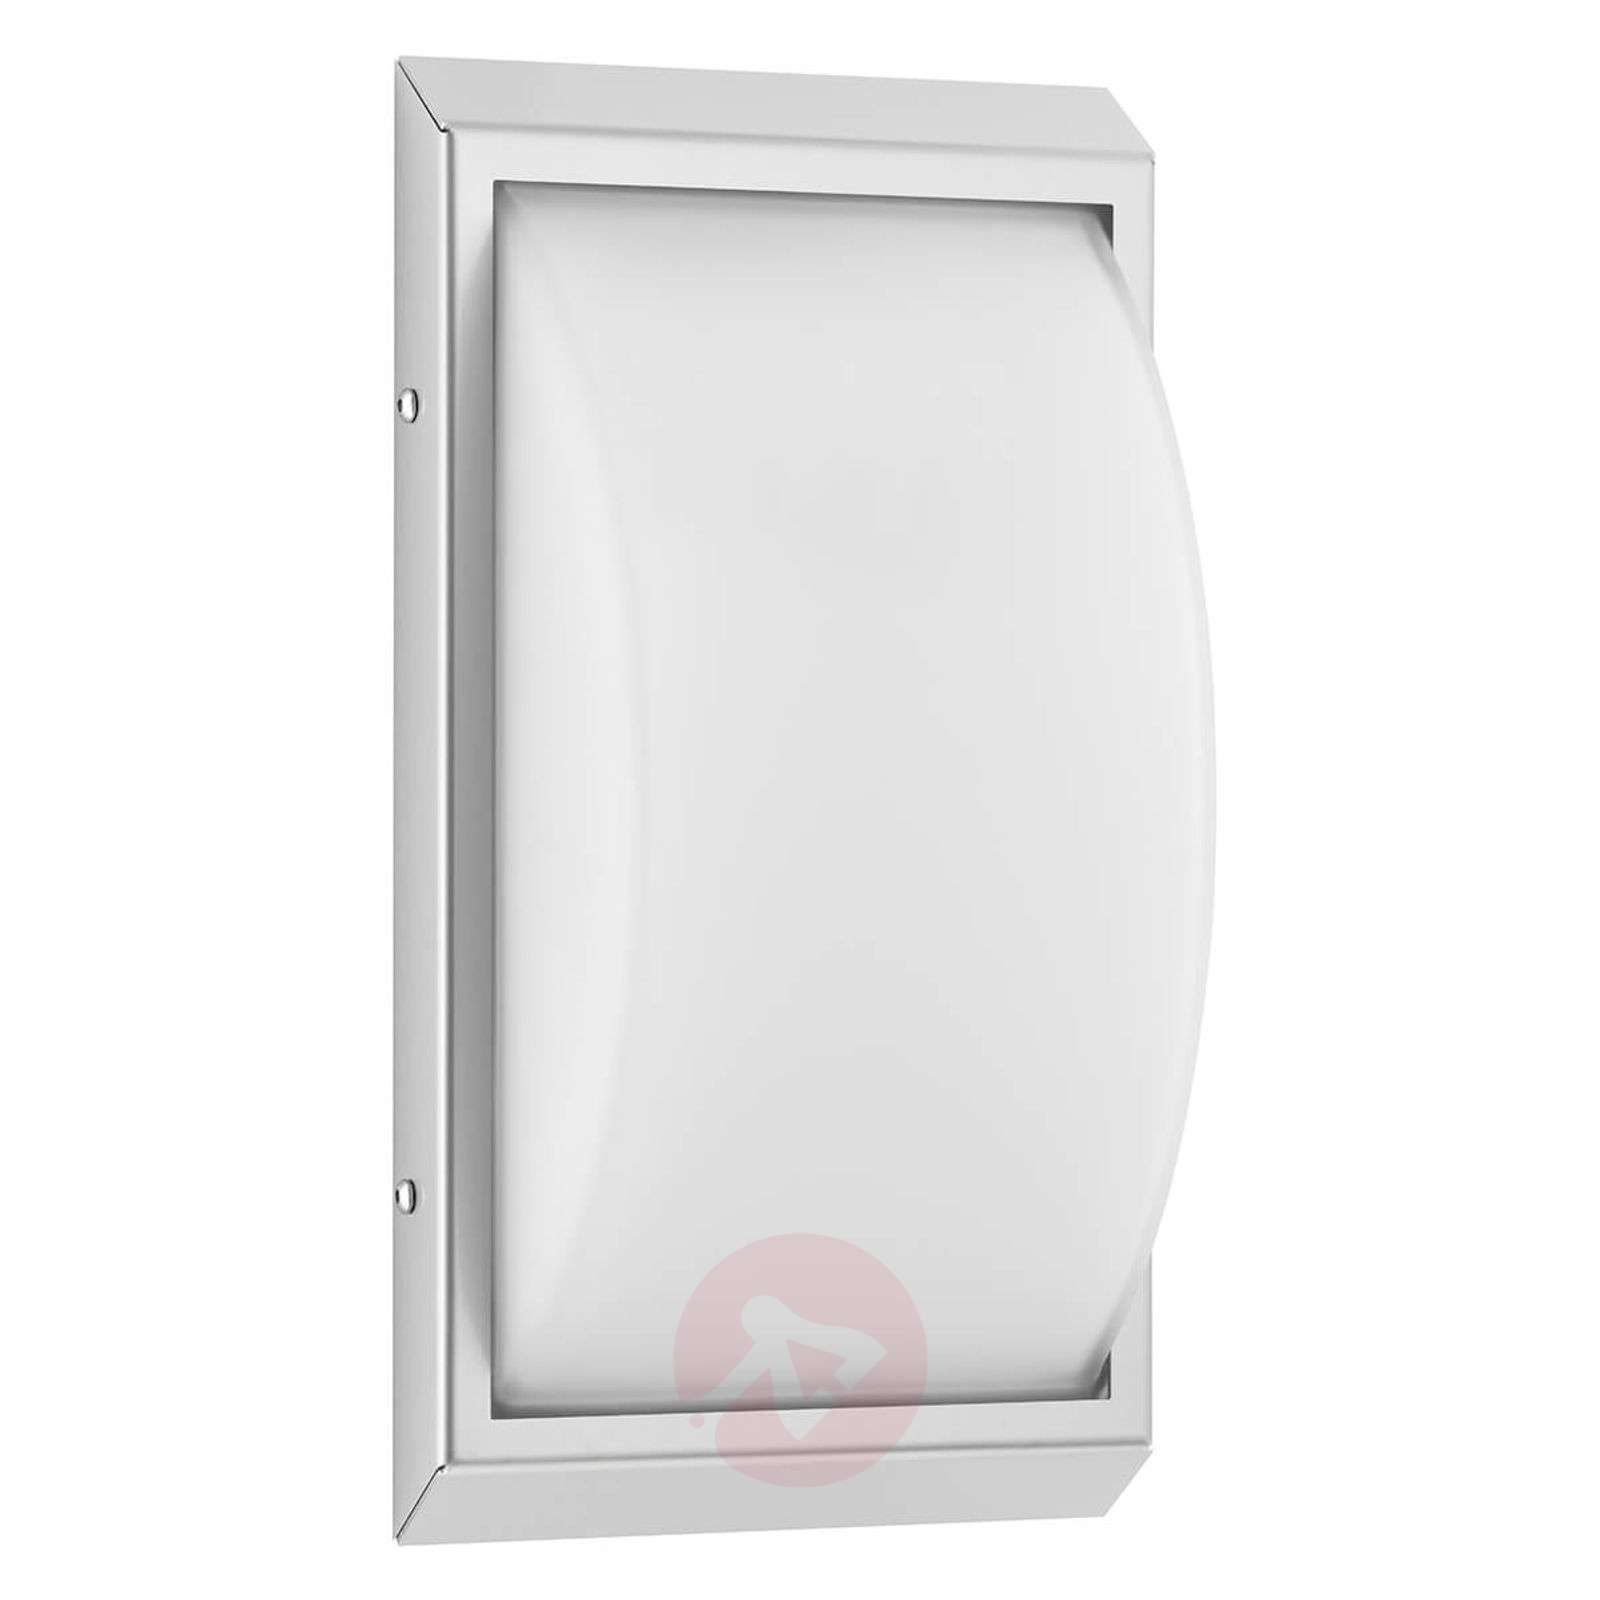 High-quality LED outdoor wall light Malte, sensor-6068118-02